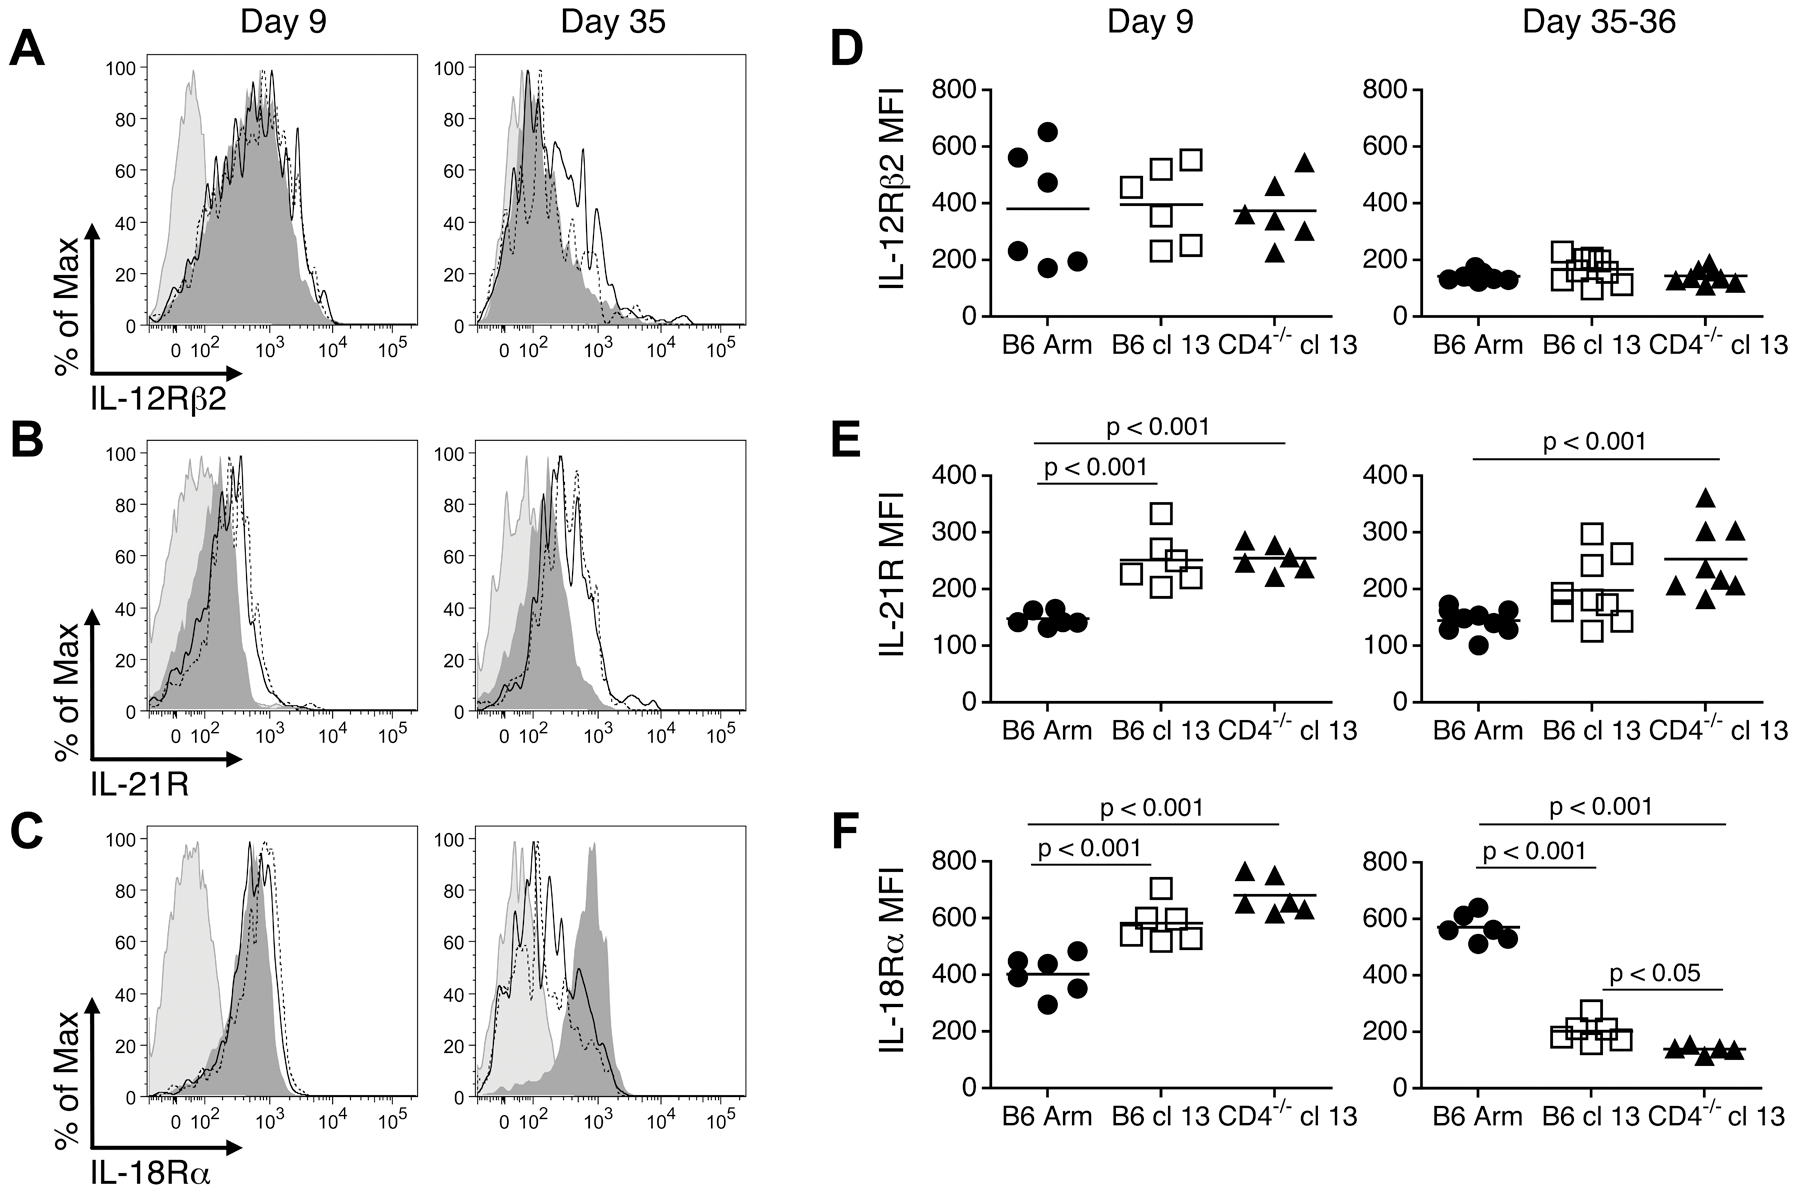 Cognate cytokine receptor expression on effector, memory, and exhausted CD8 T cells.